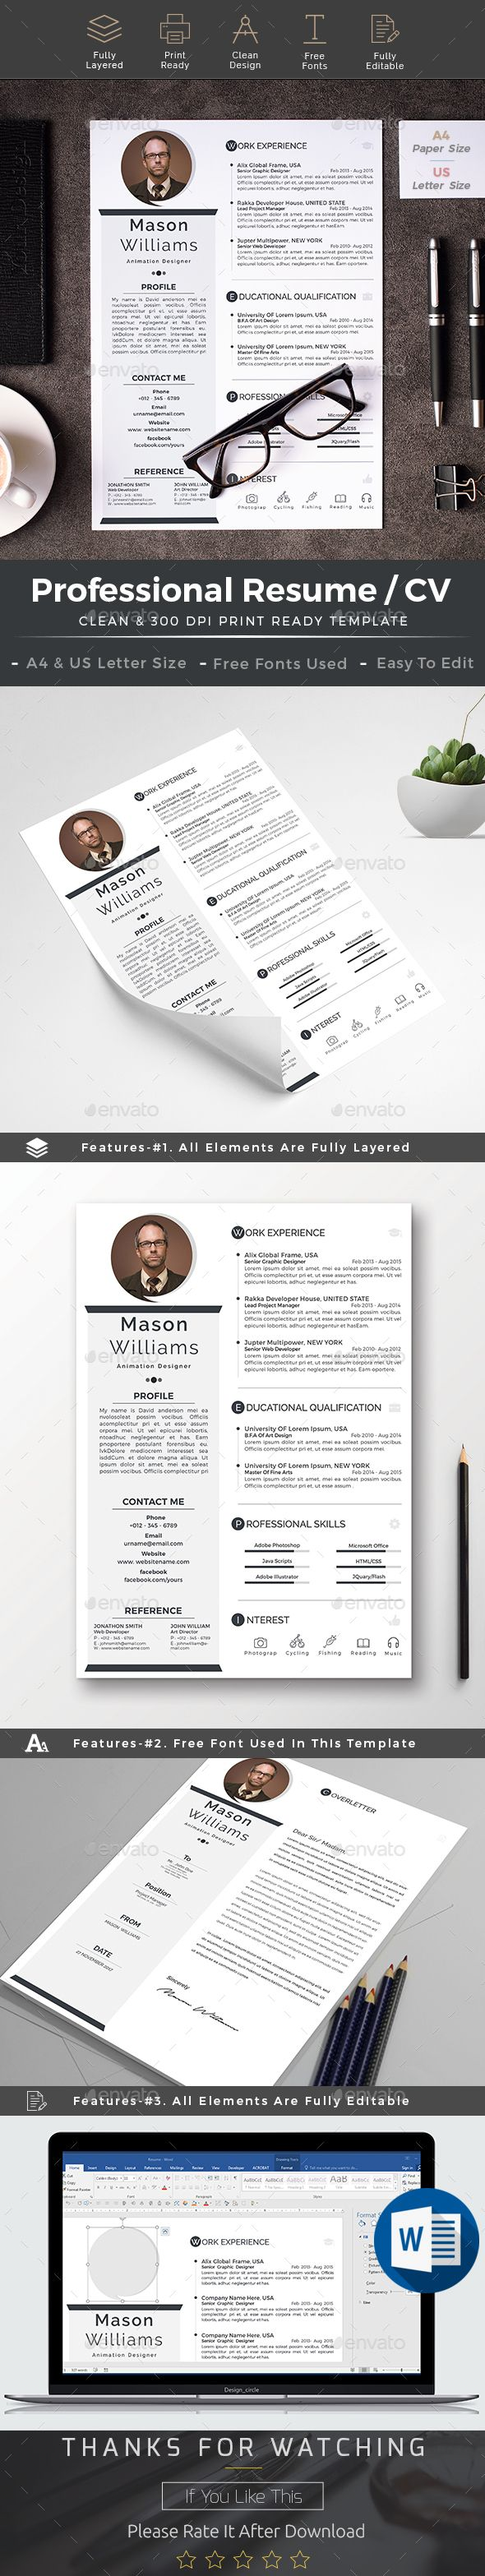 Resume cv word Simple Resume TemplateCreative